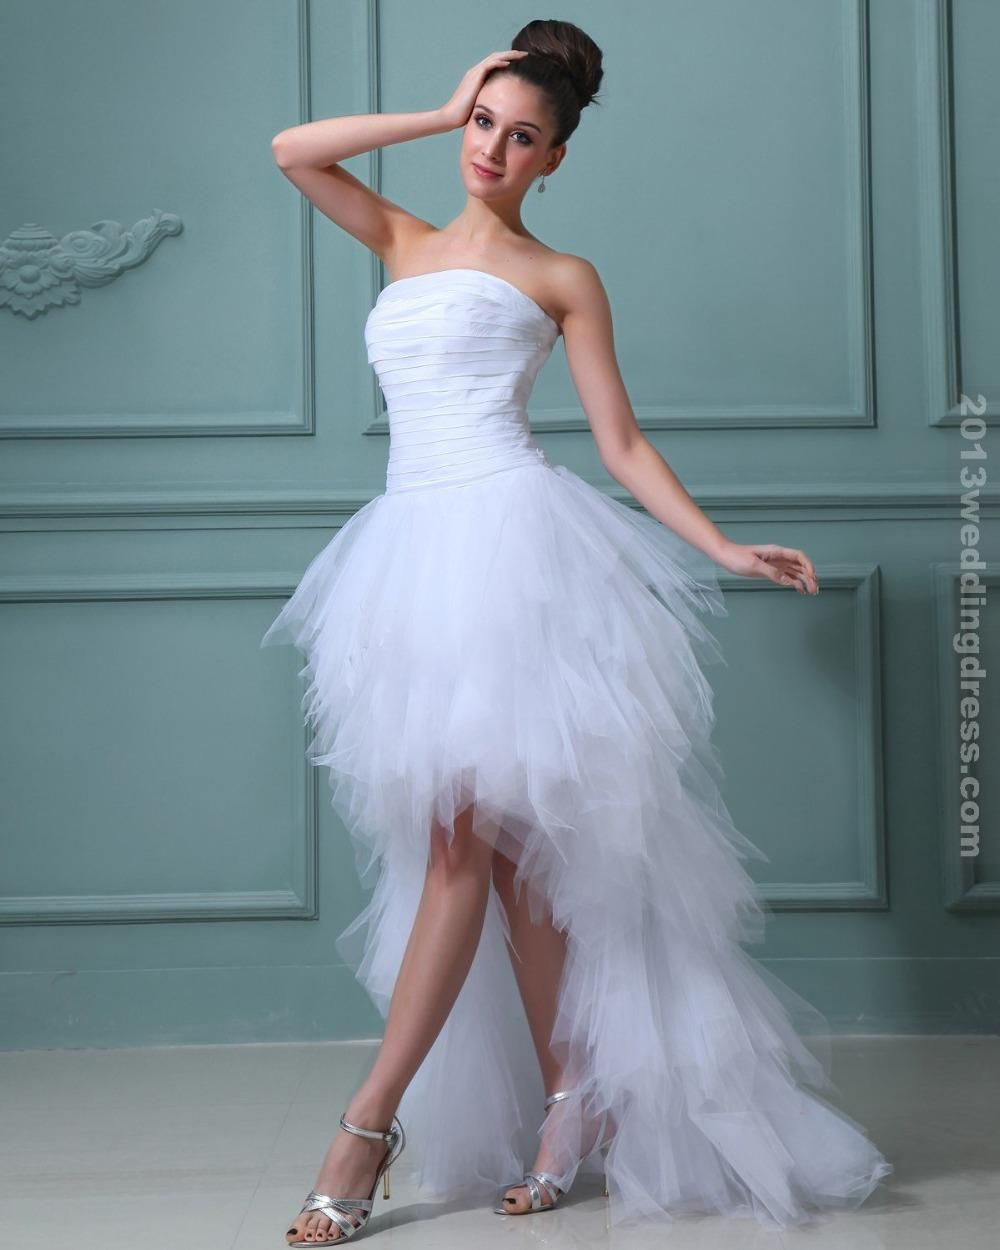 High low wedding dress short in front and long in back strapless